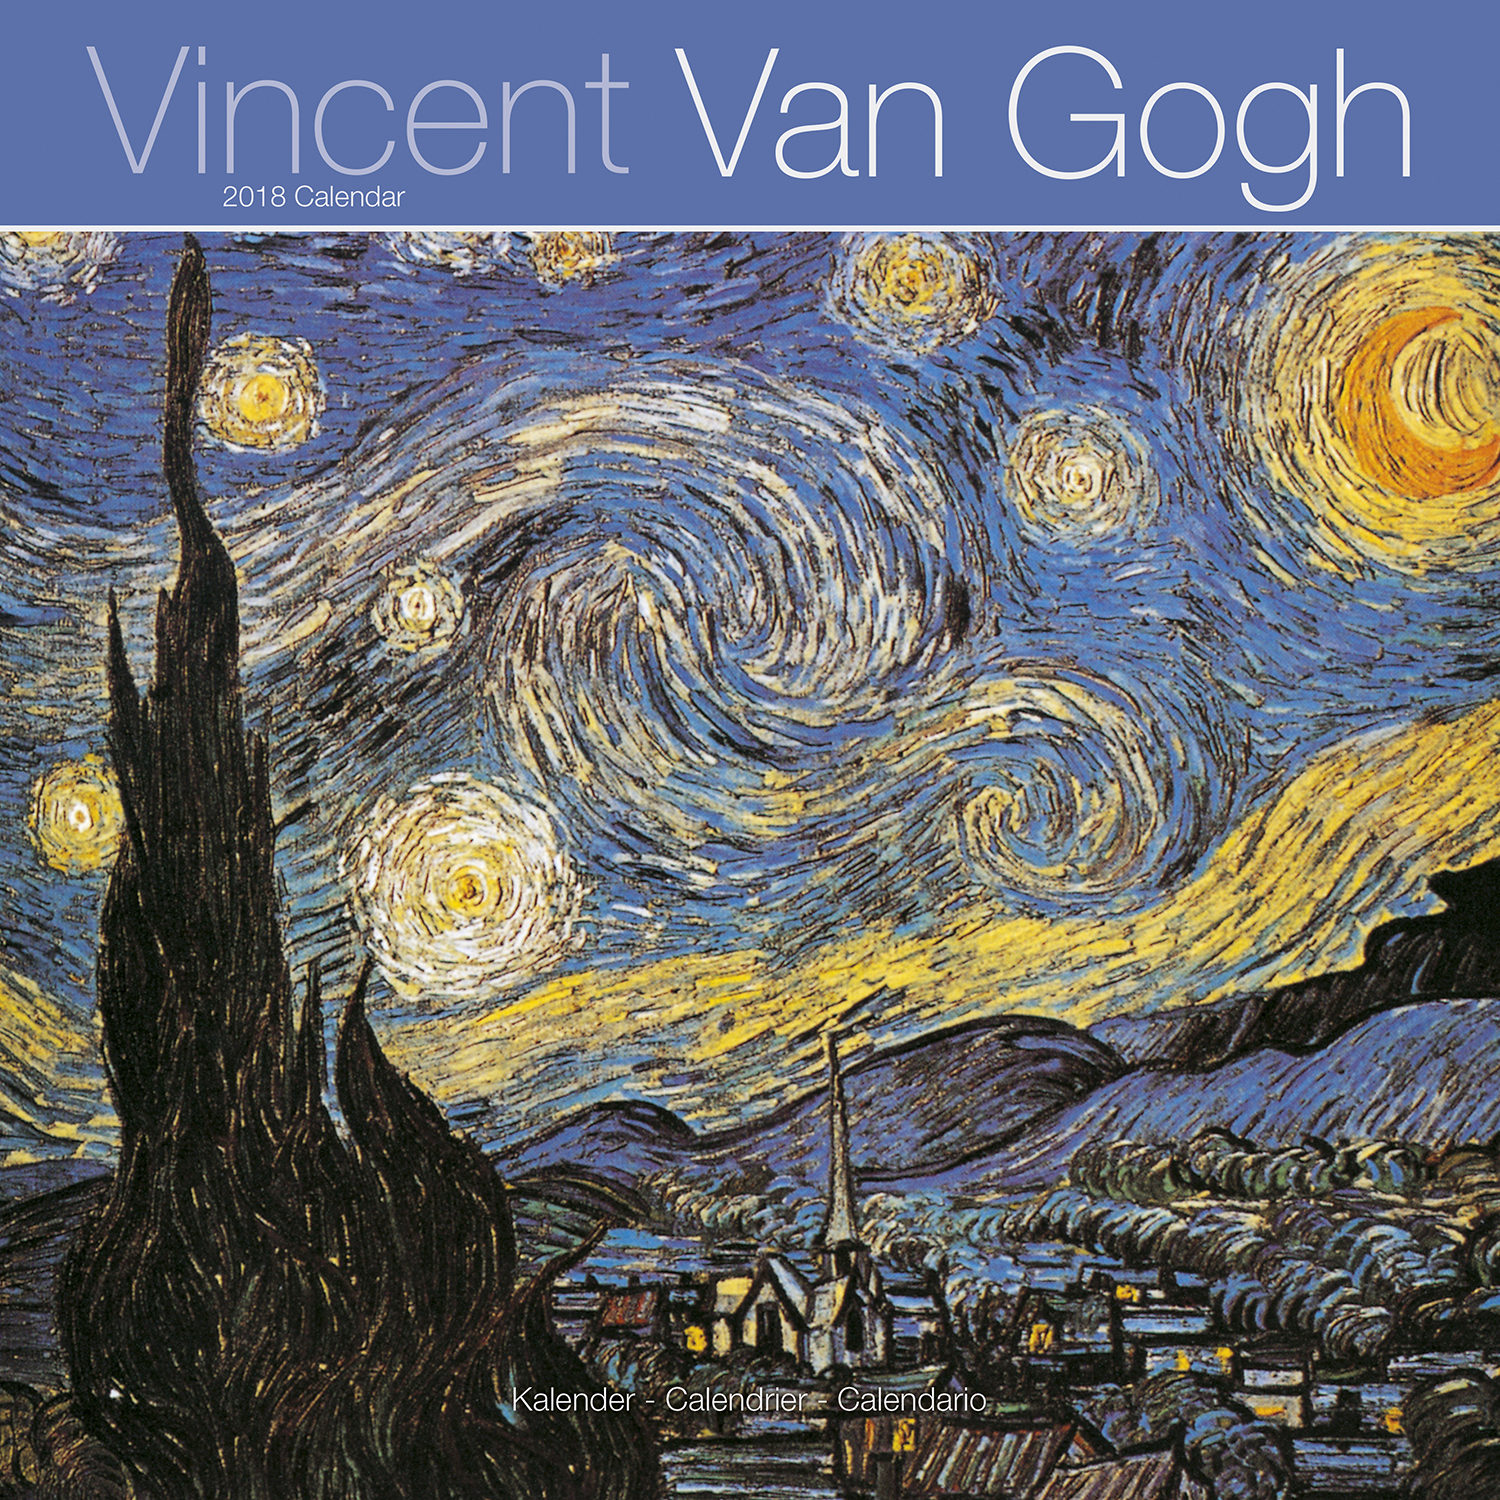 van gogh calendar 2018 pet prints inc. Black Bedroom Furniture Sets. Home Design Ideas